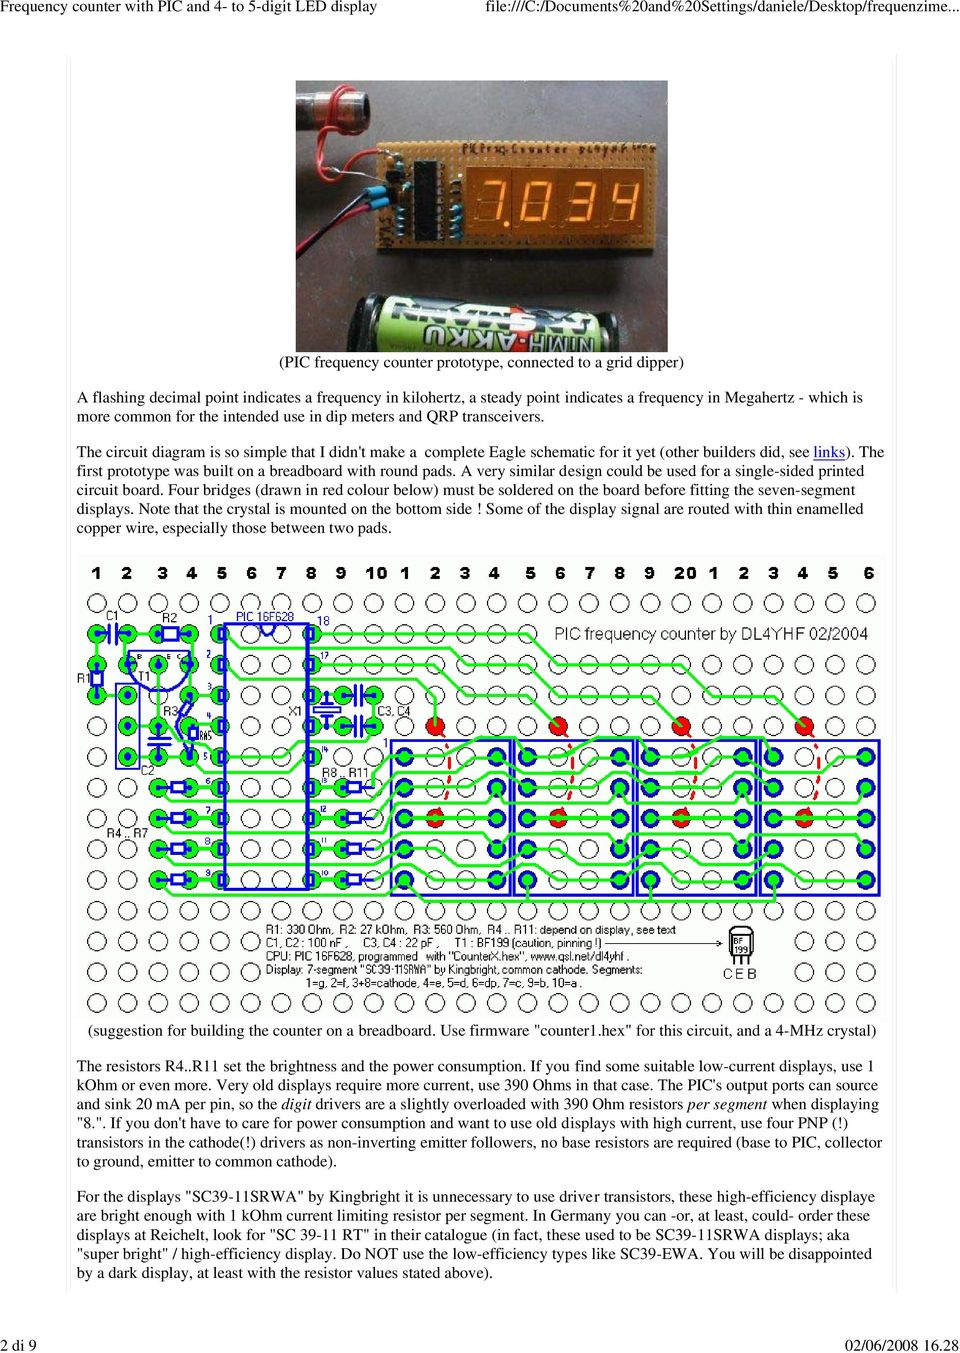 Frequency Counter With A Pic And Minimum Hardware Pdf Figure 1 Pic18f452 Led Blinking Circuit For The Intended Use In Dip Meters Qrp Transceivers Diagram Is So